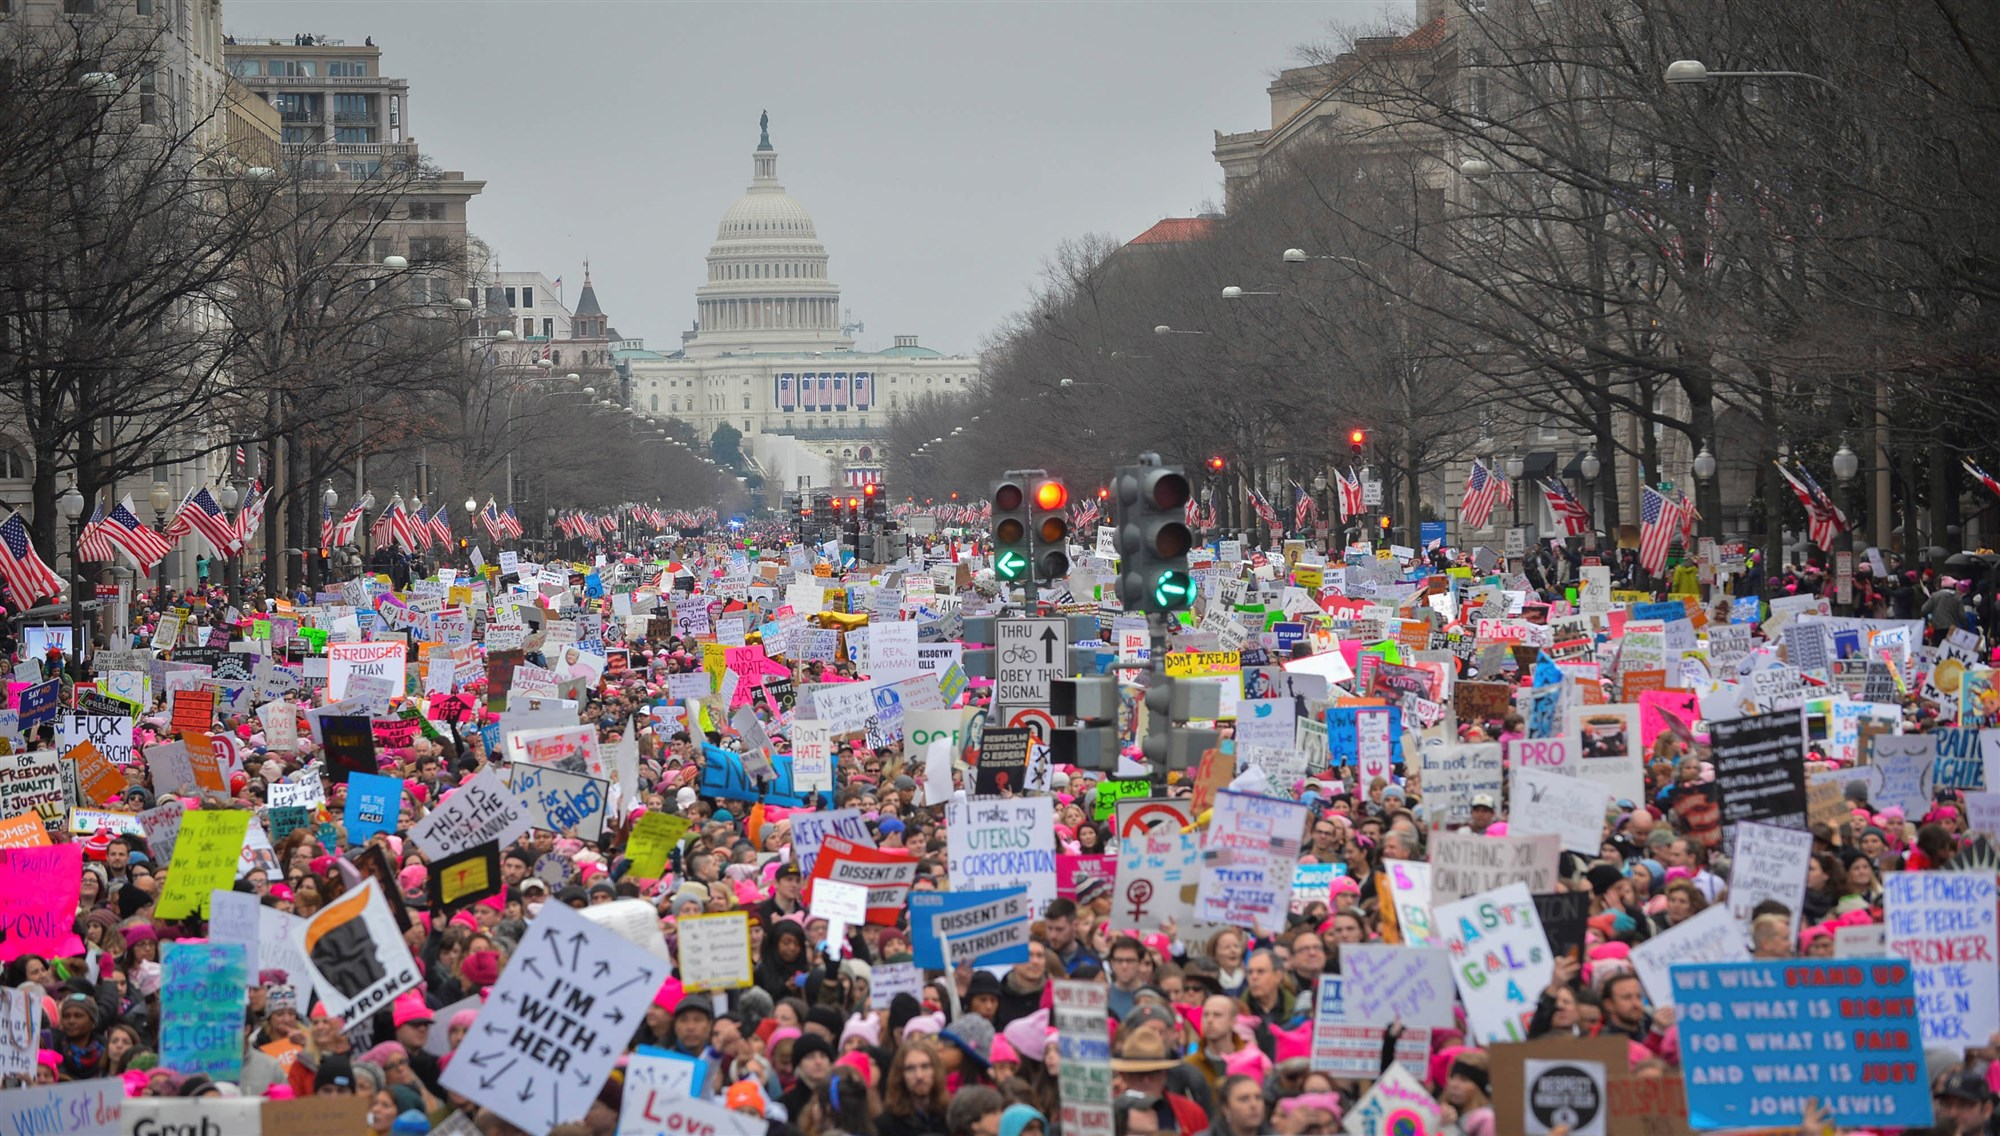 A photo from the Women's March, Washington, DC, in 2017.